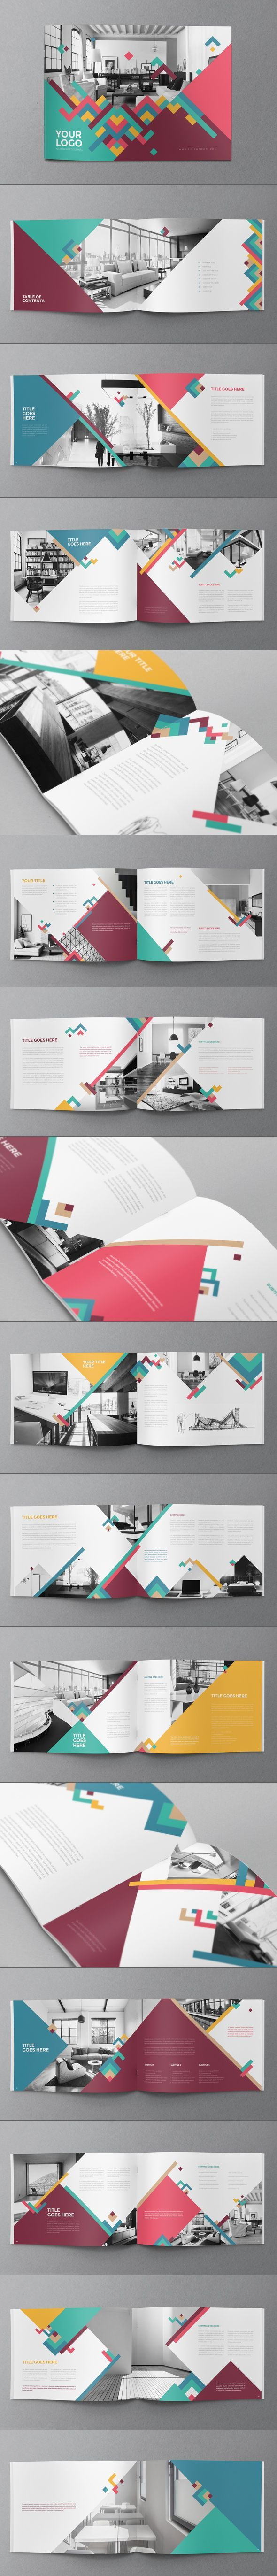 Colorful Pattern Brochure 2. Download here: http://graphicriver.net/item/colorful-pattern-brochure-2/8113993?ref=abradesign #design #brochure: